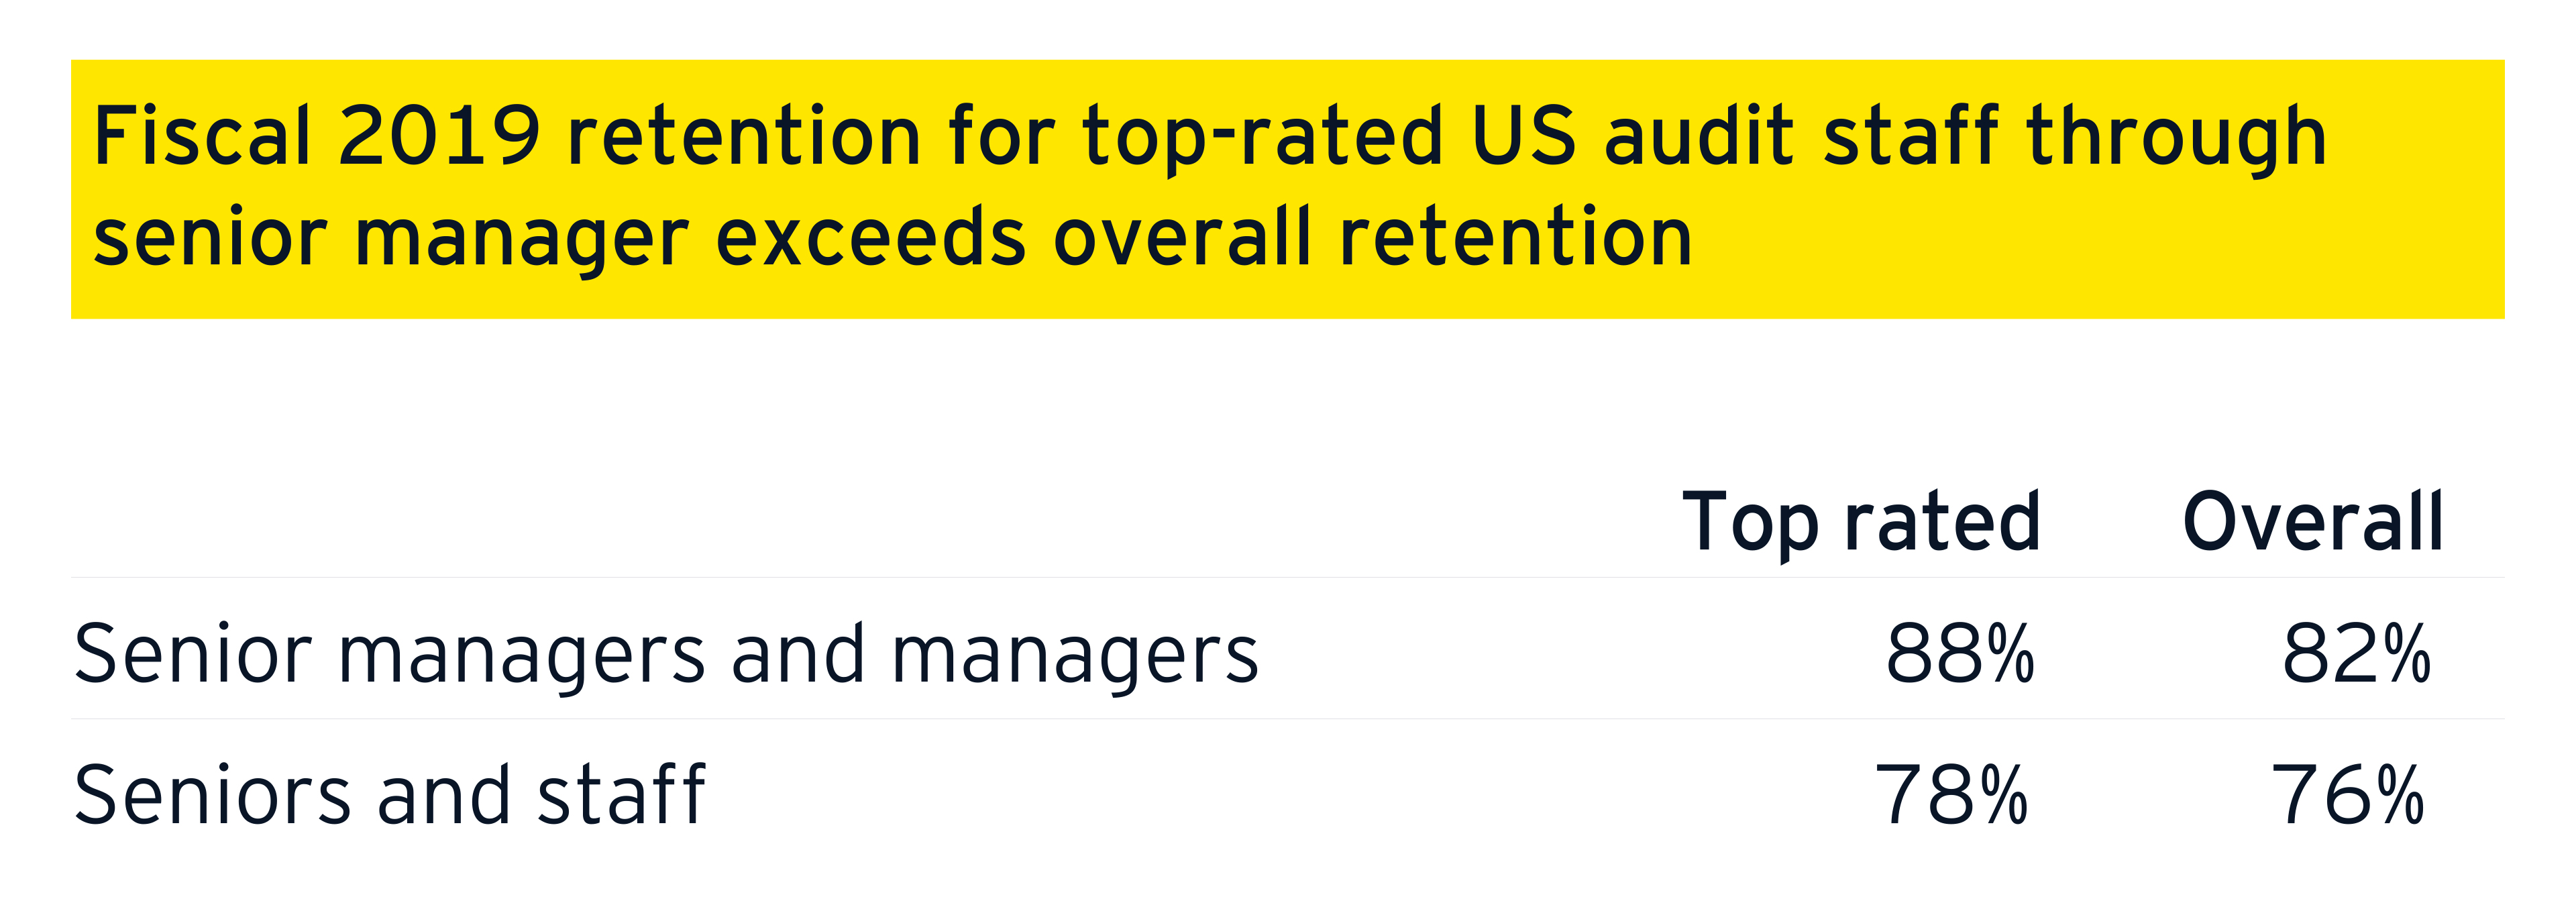 Fiscal 2019 retention for top-rated US audit staff